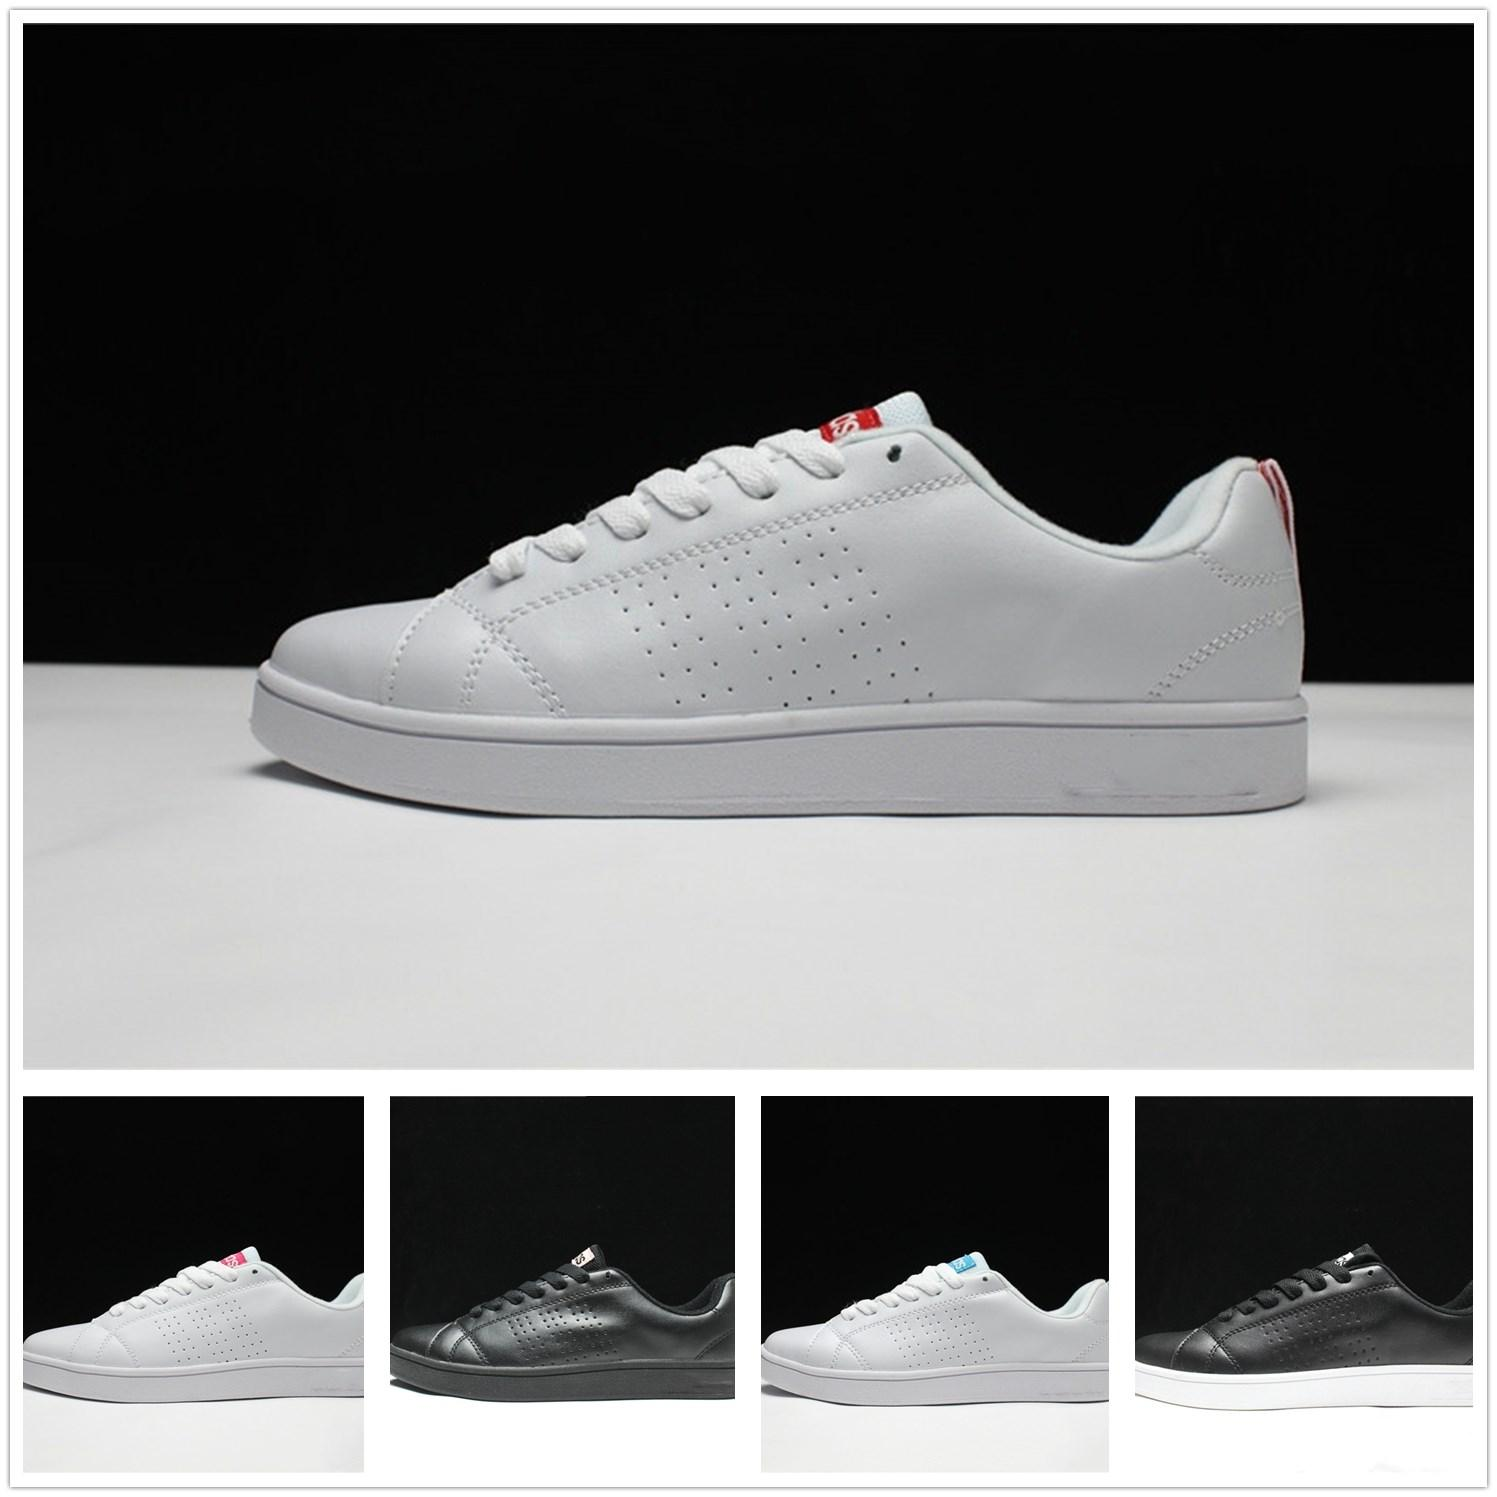 f18bbff047f 2018 NEO Label ADVANTAGE CLEAN QT Unisex Skateboarding Shoes ...